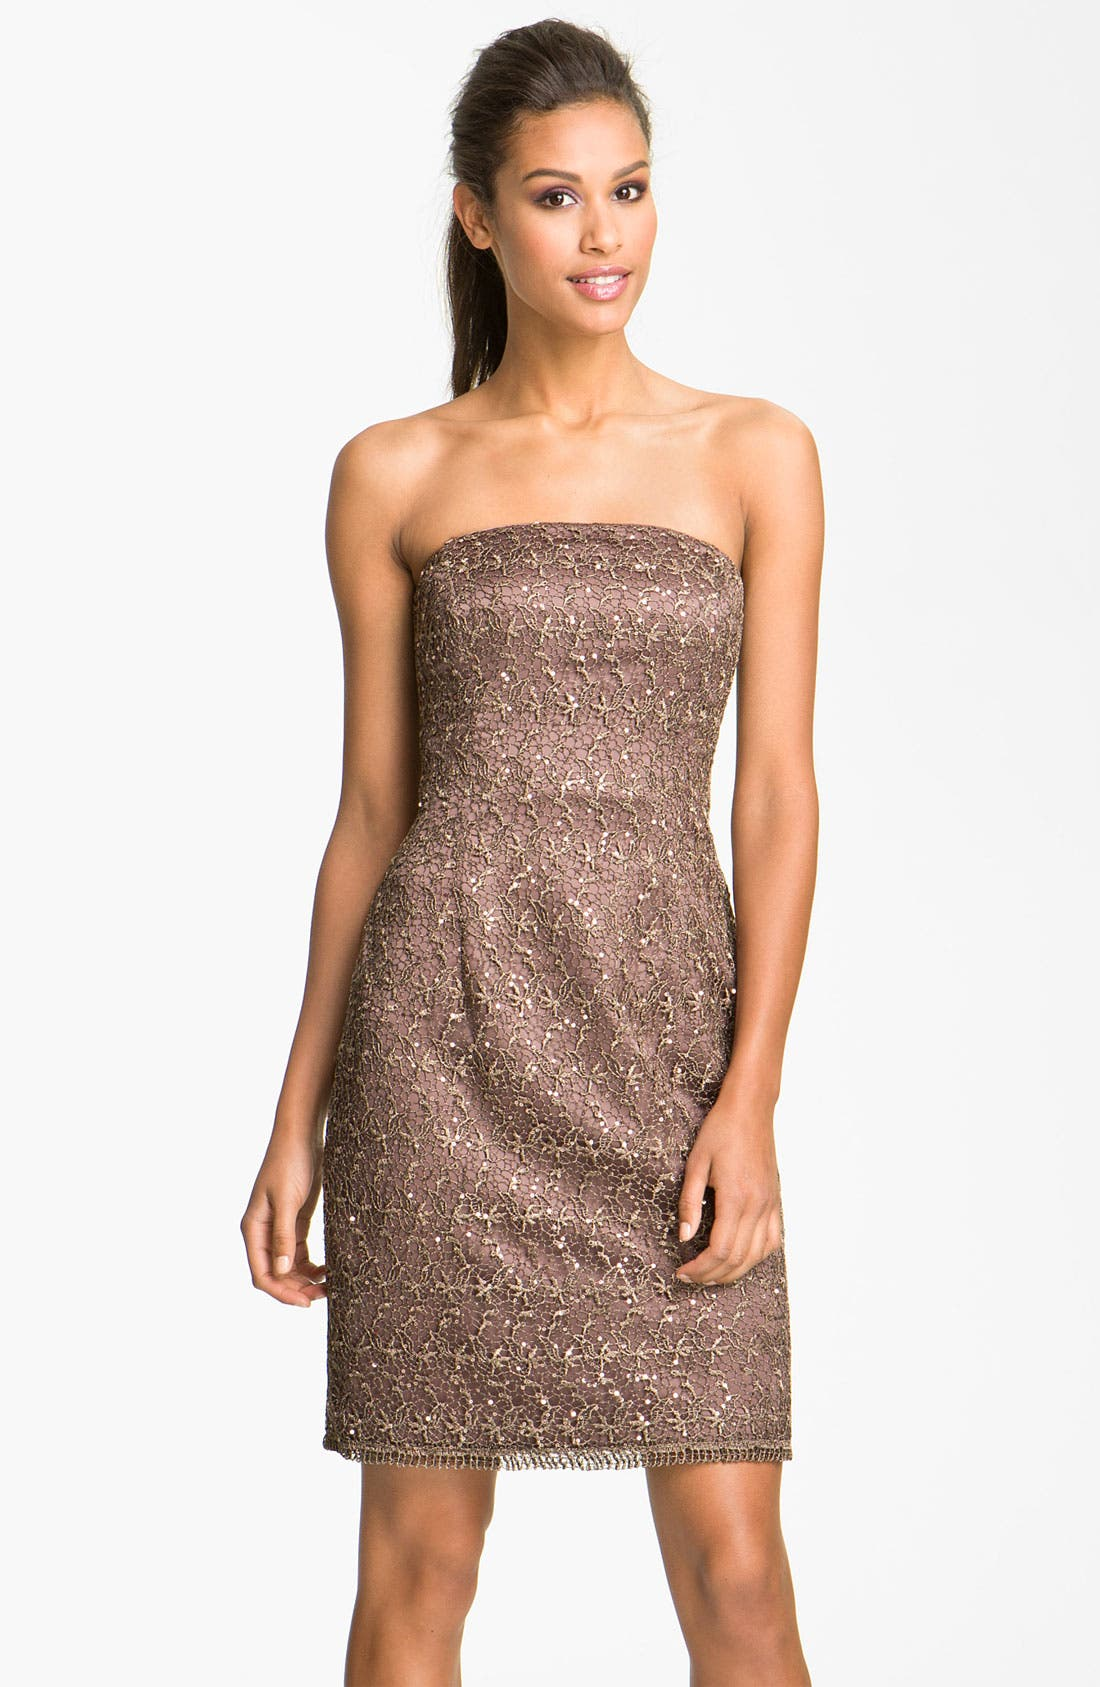 Alternate Image 1 Selected - Adrianna Papell Strapless Sequin & Lace Sheath Dress (Petite)